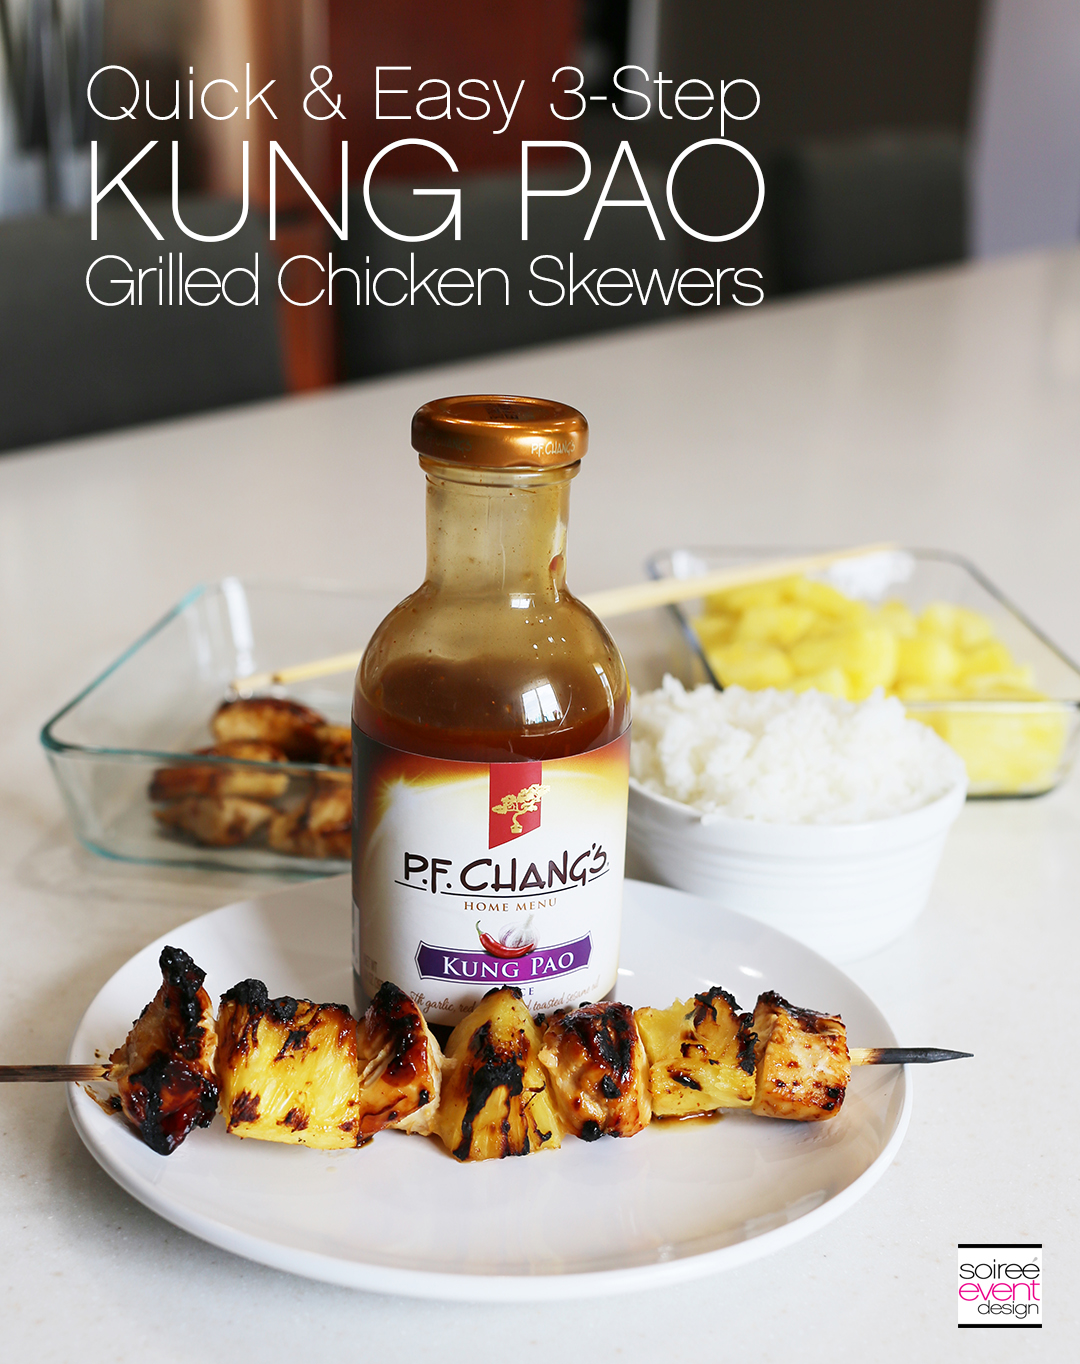 3-Step Kung Pao Grilled Chicken Skewers